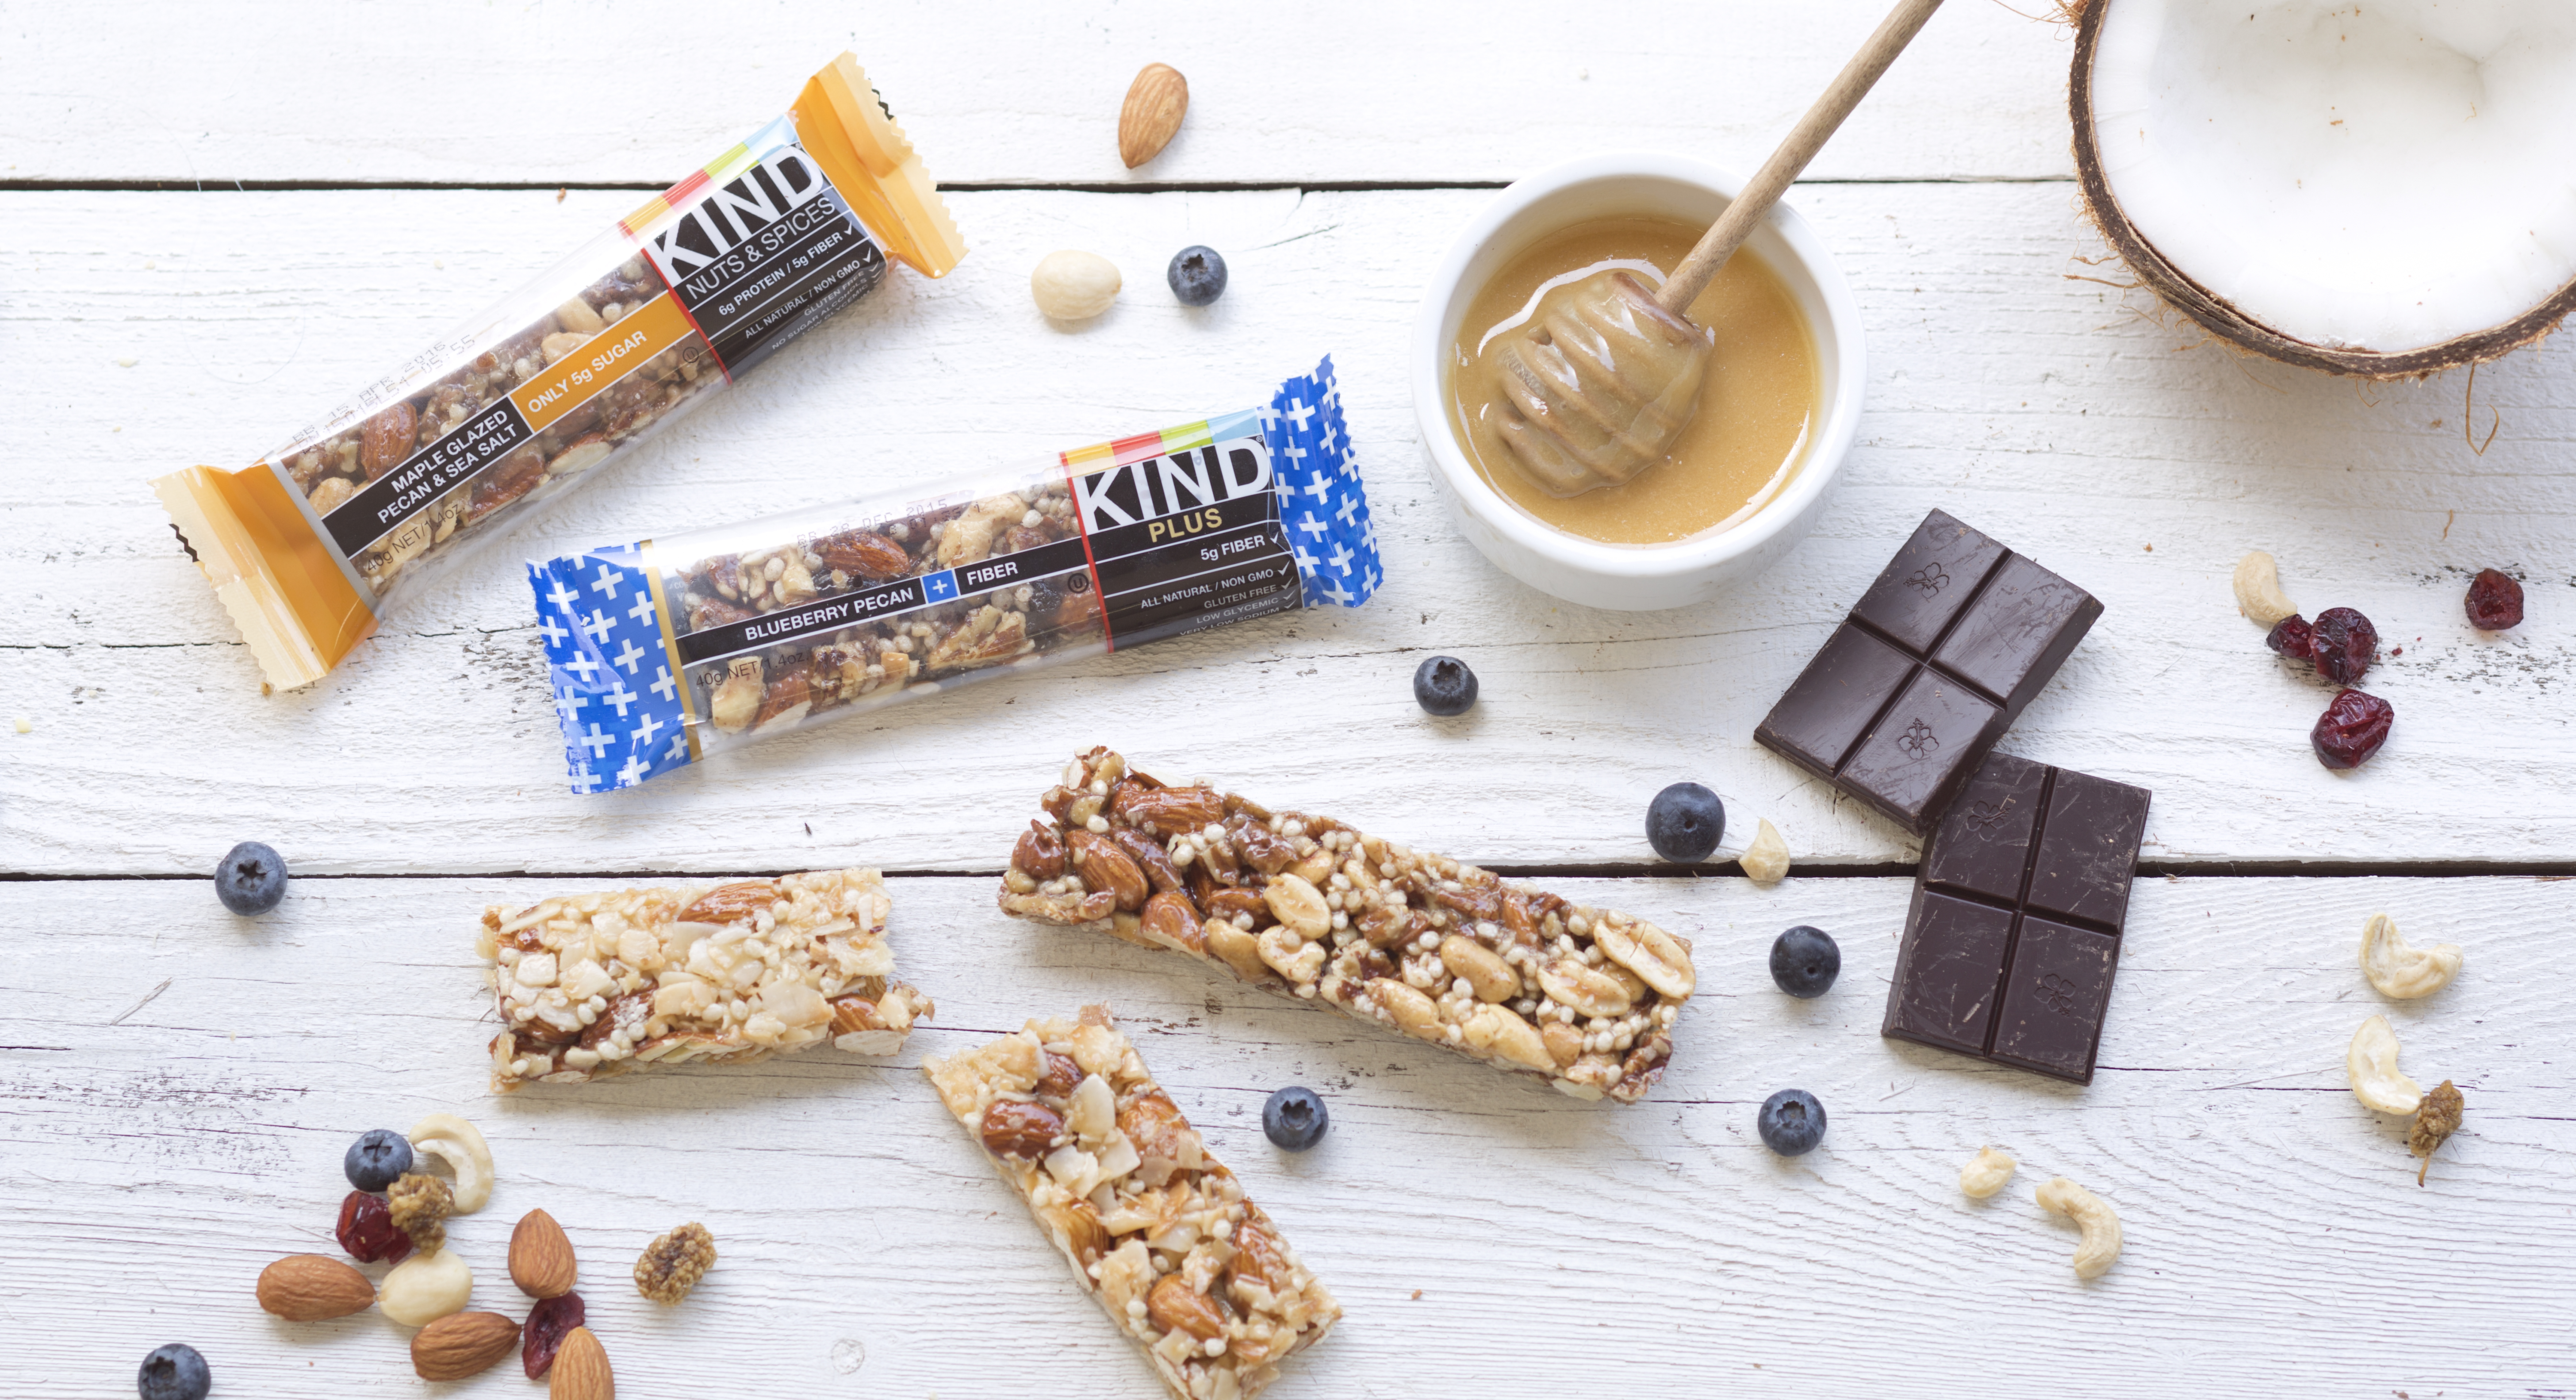 KIND Wants to Keep Snacking Simple—And That's a Good Thing